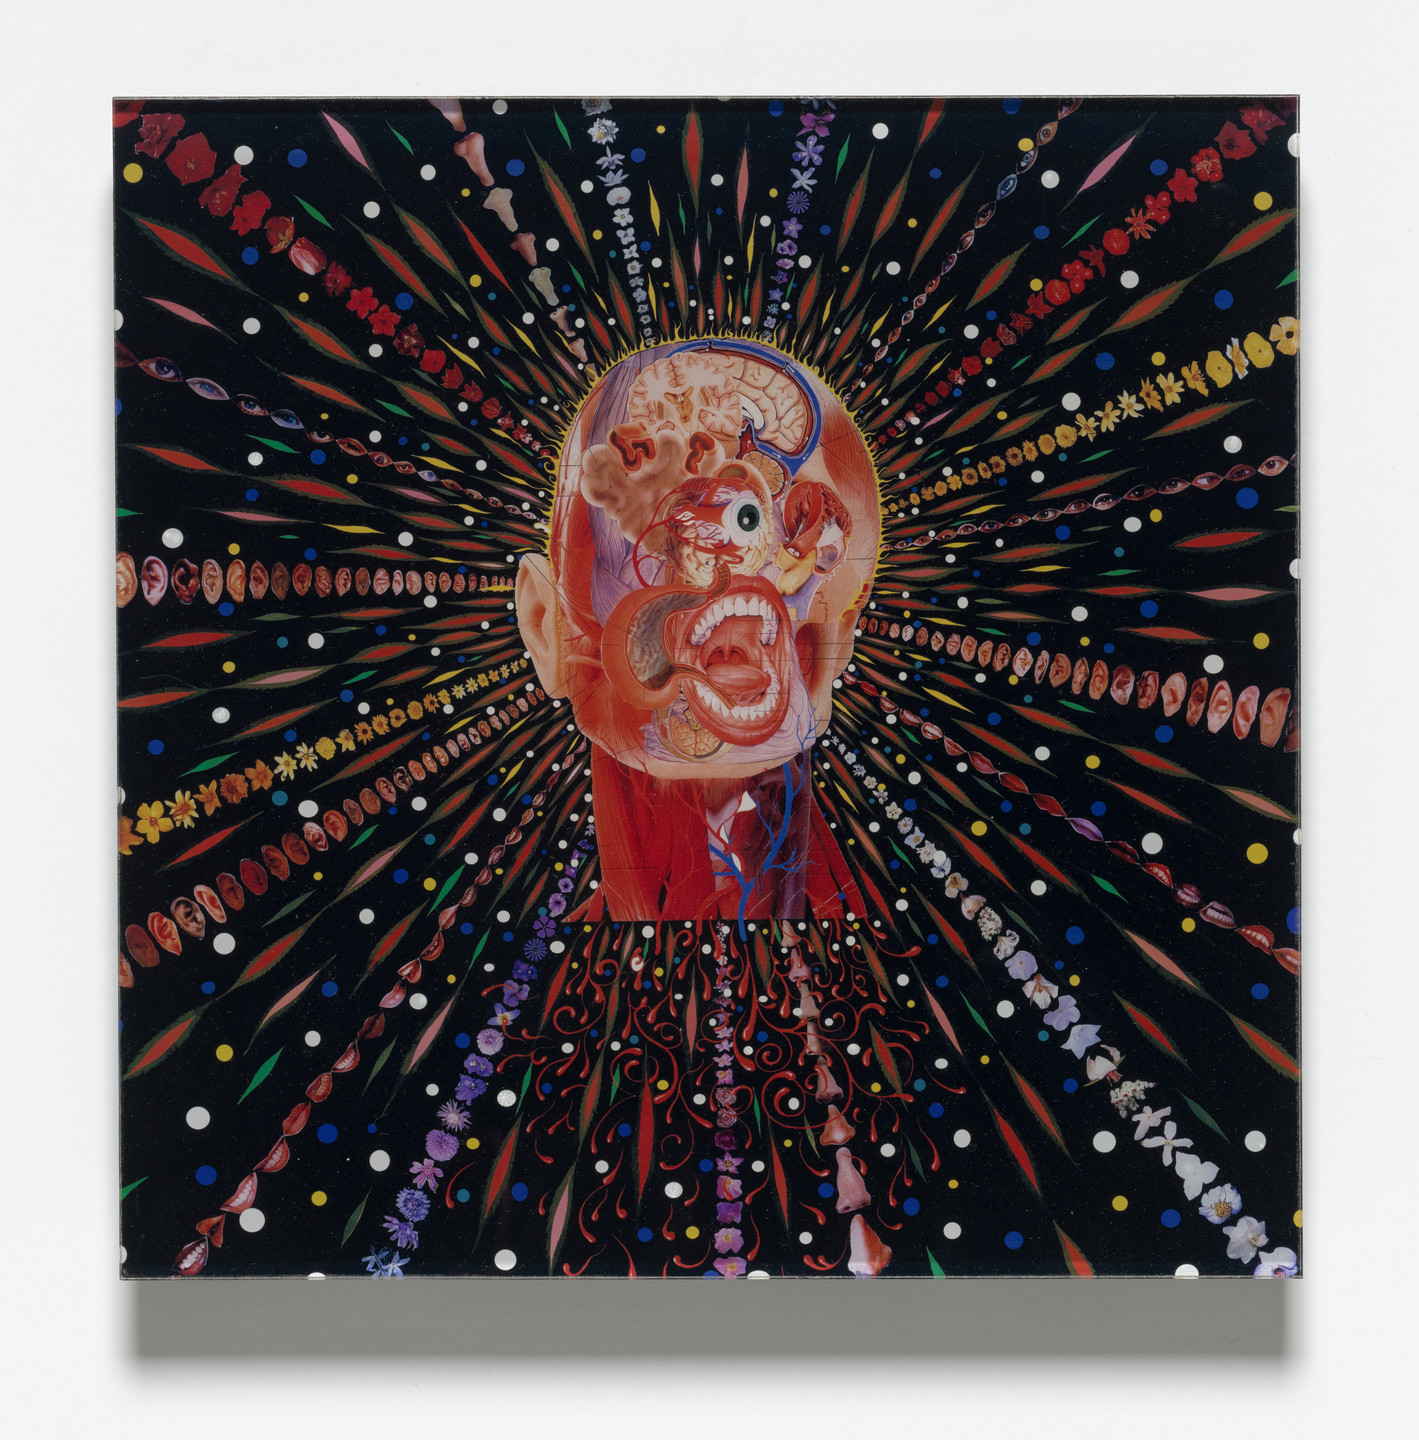 Fred Tomaselli. Cyclopticon for Parkett 67. 2003